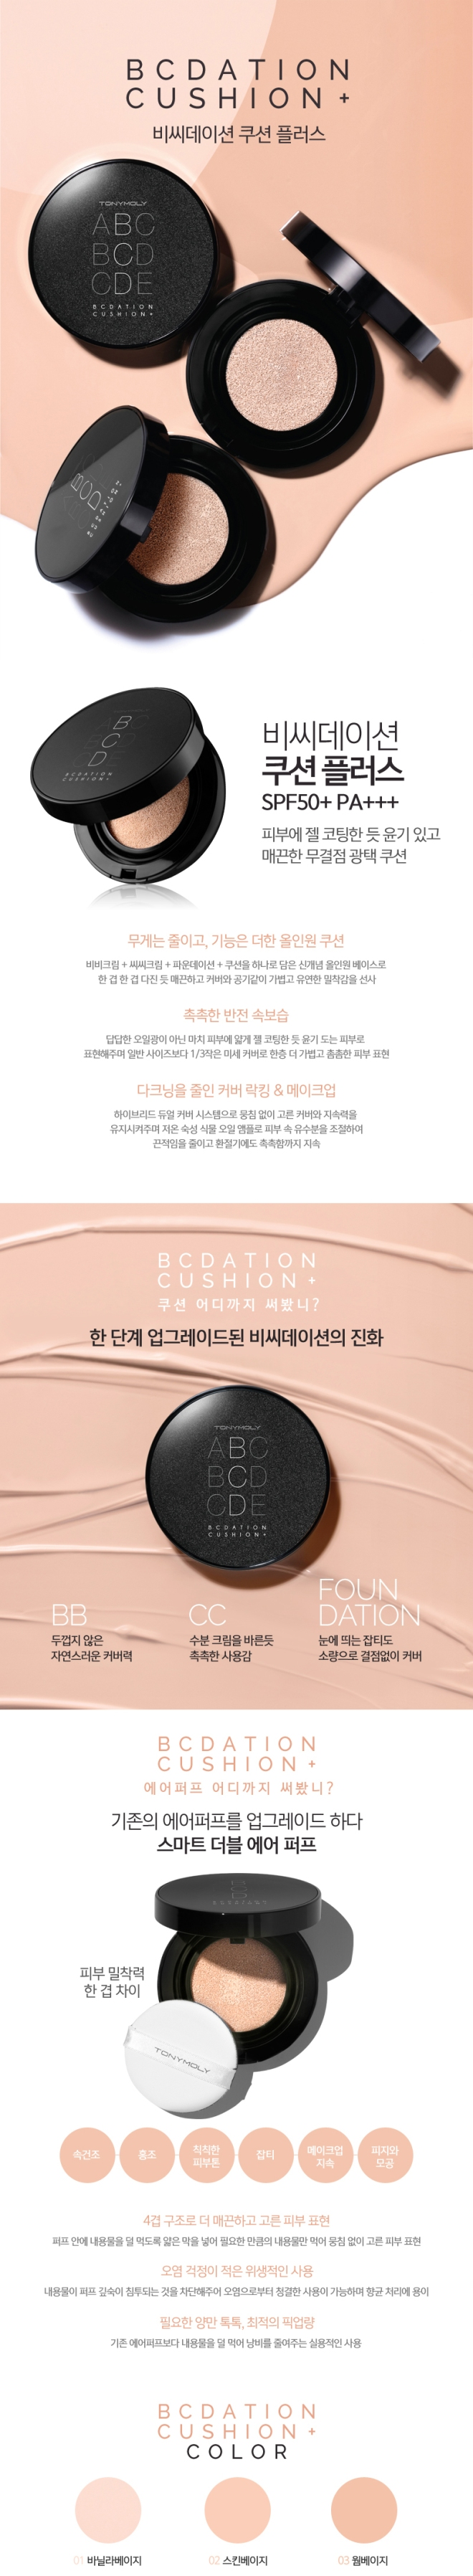 Tonymoly BCDation Cushion+ (Info Kr)